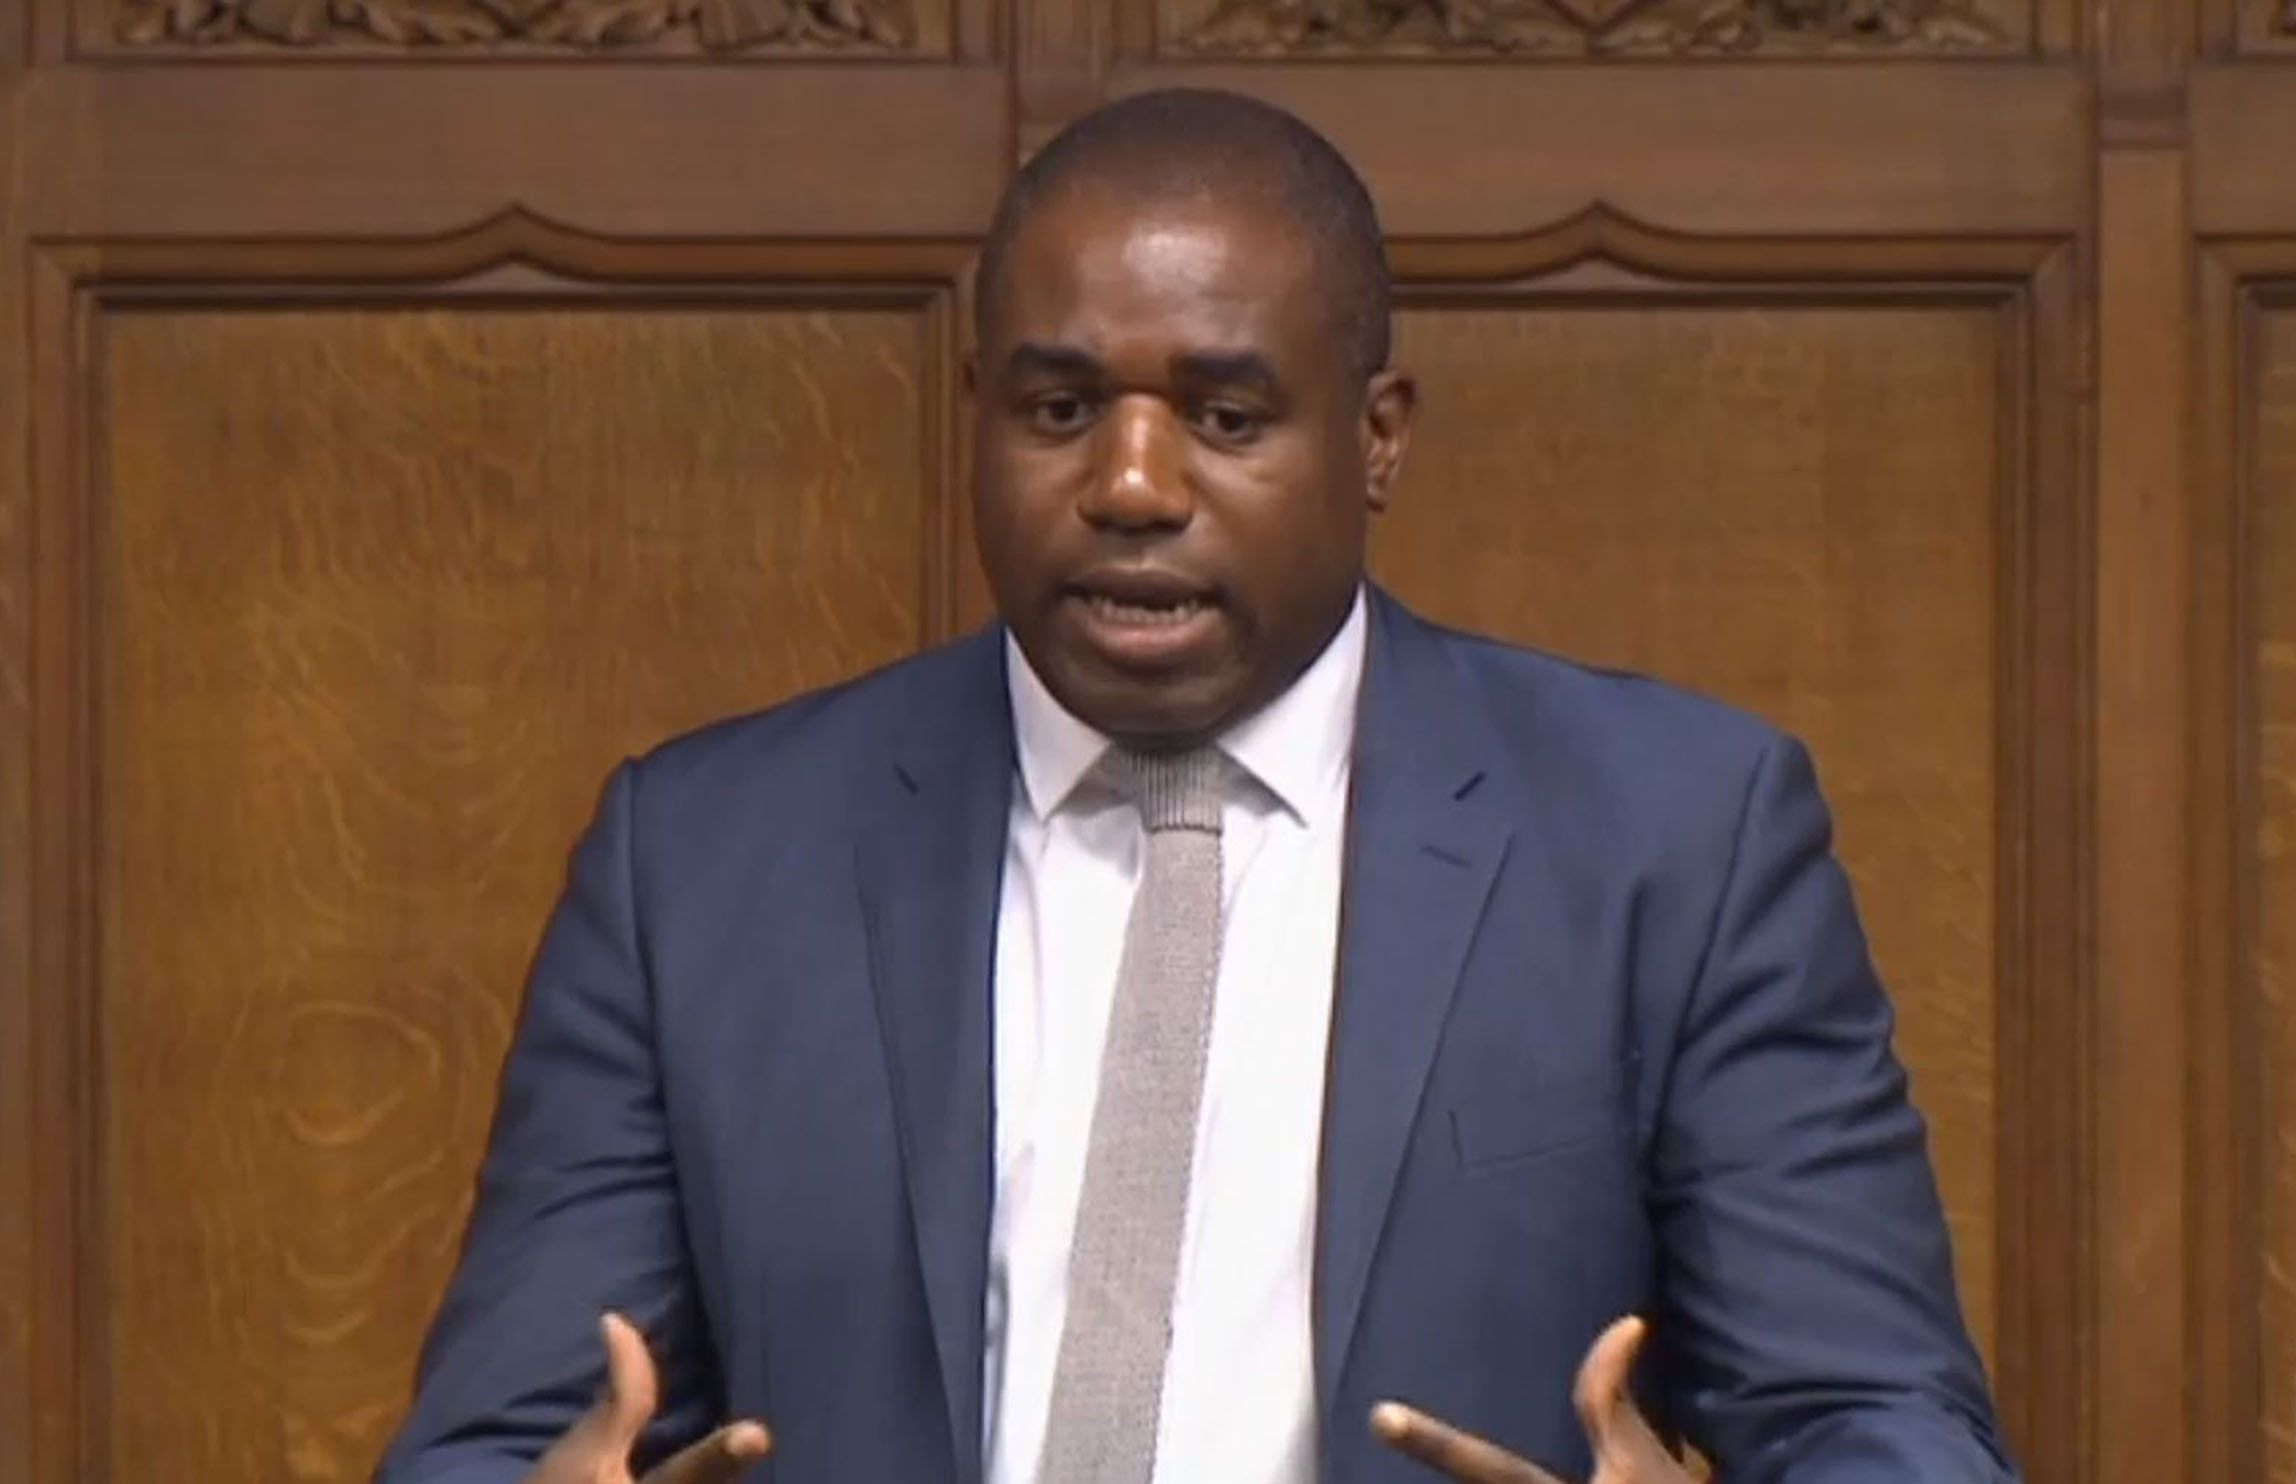 David Lammy Accuses Theresa May Of Shedding 'Crocodile Tears' Over Windrush Generation